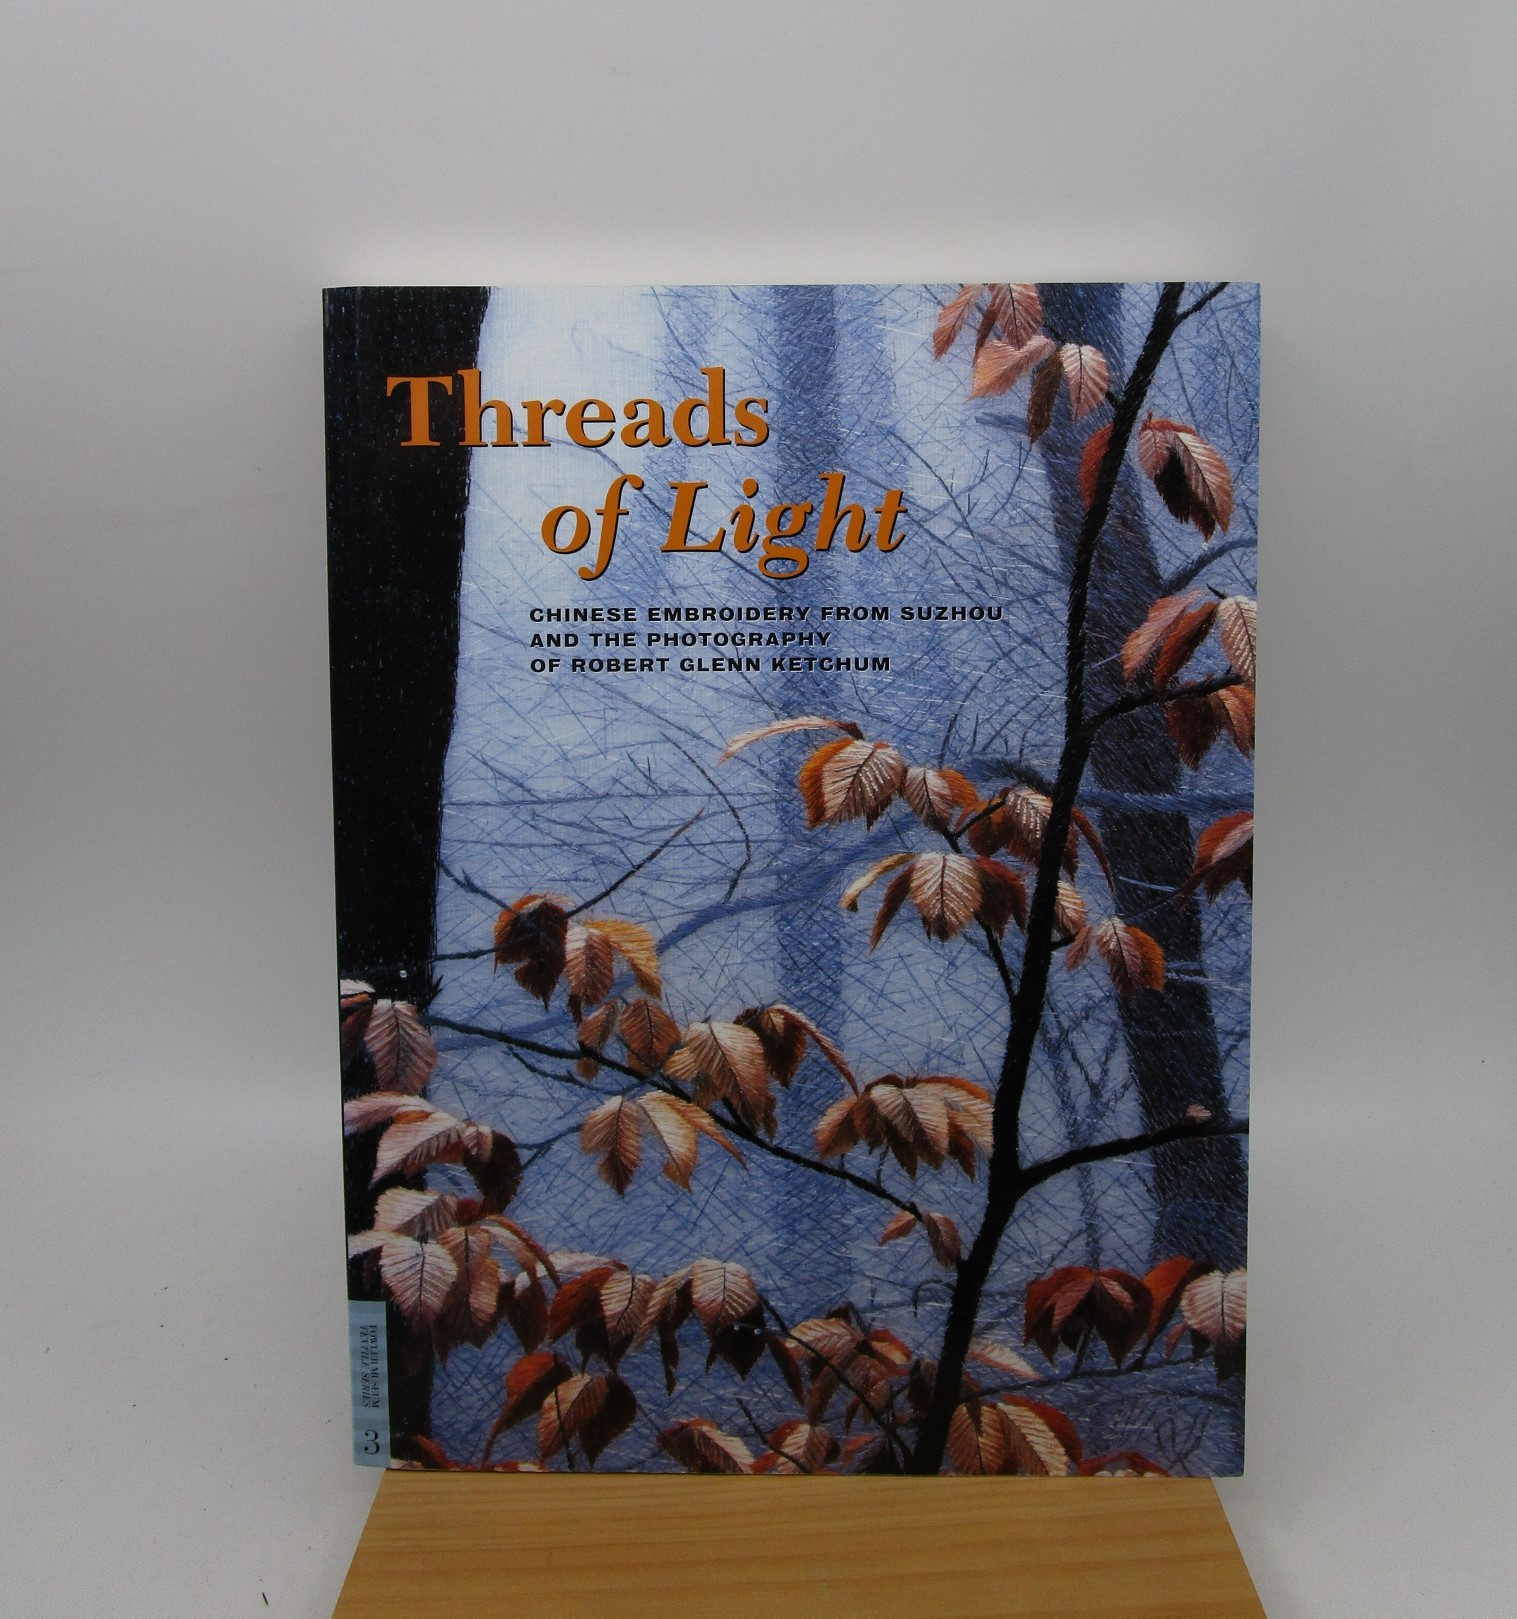 Image for Threads of Light: Chinese Embroidery from Suzhou and the Photography of Robert Glenn Ketchum (UCLA Fowler Museum of Cultural History Textile Series) FIRST EDITION